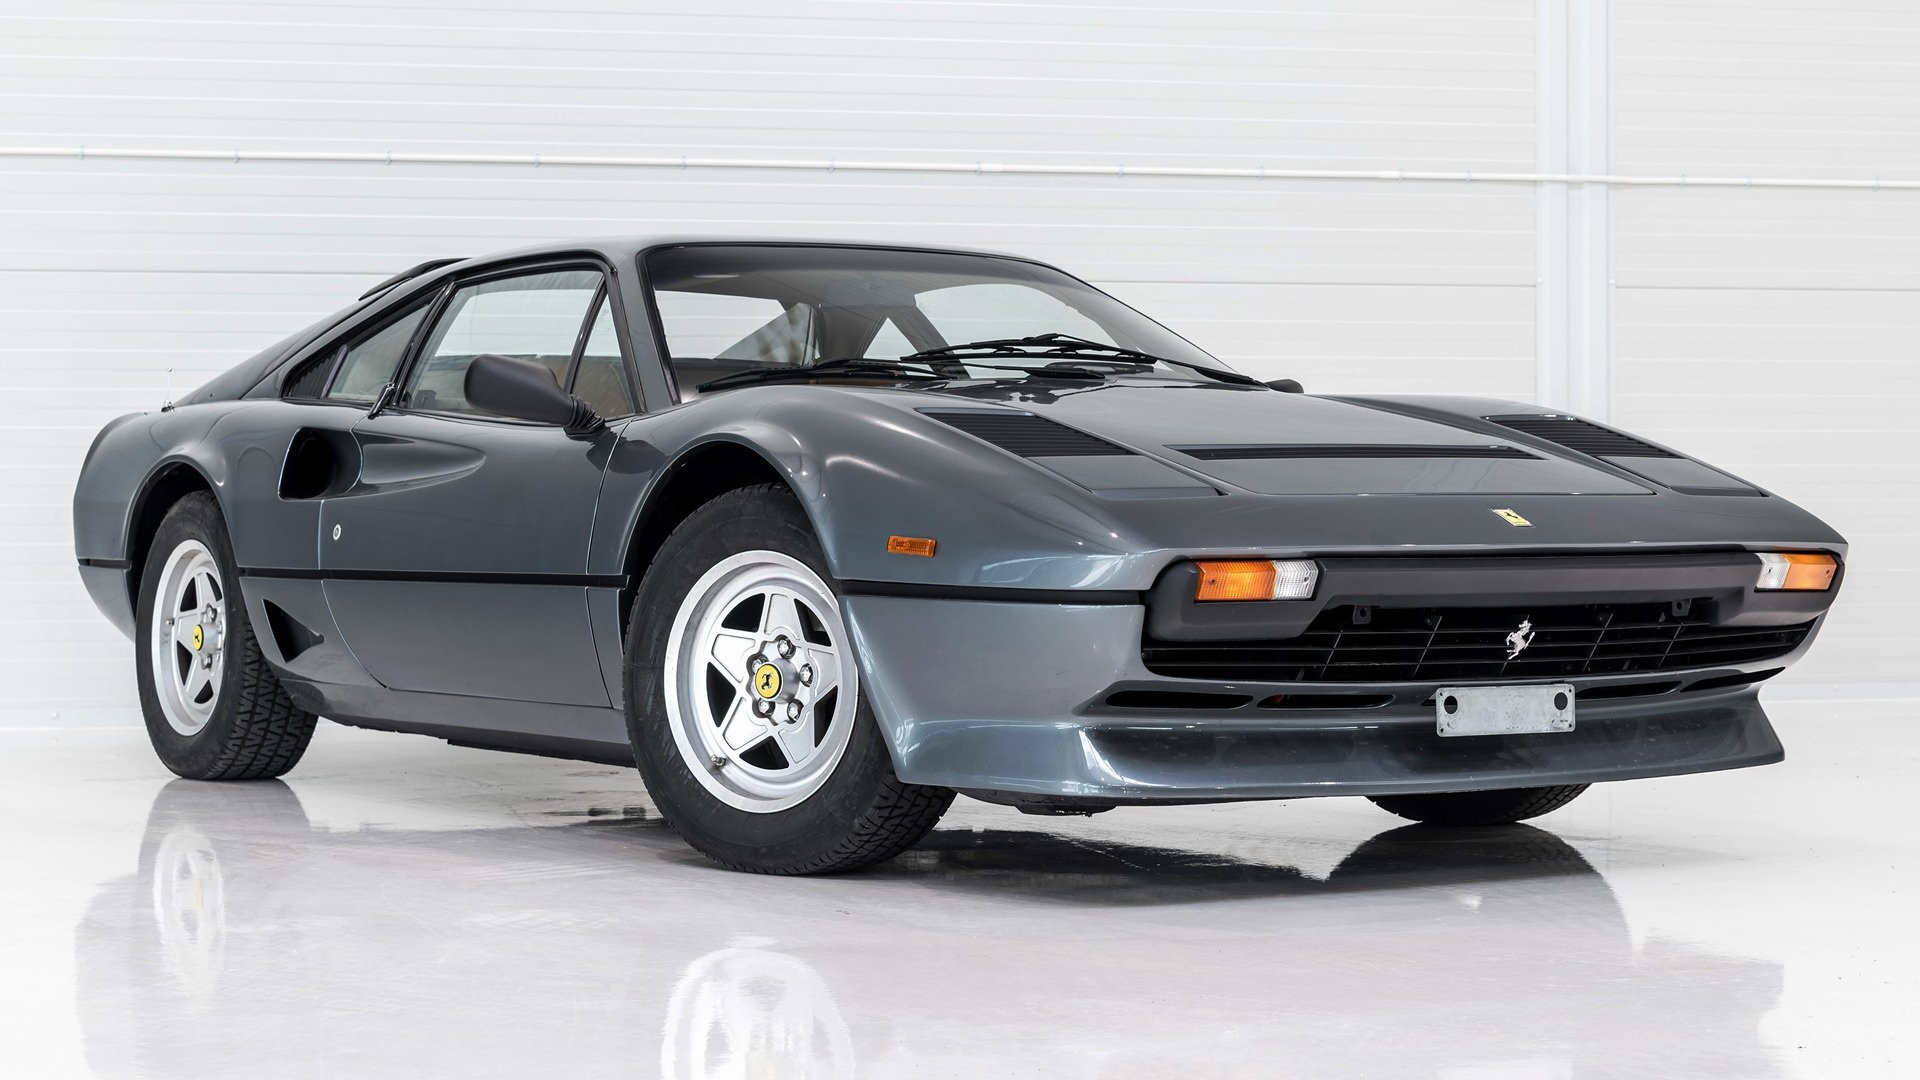 3 Ferrari 208 Gtb Turbo Hd Wallpapers Background Images Wallpaper Abyss